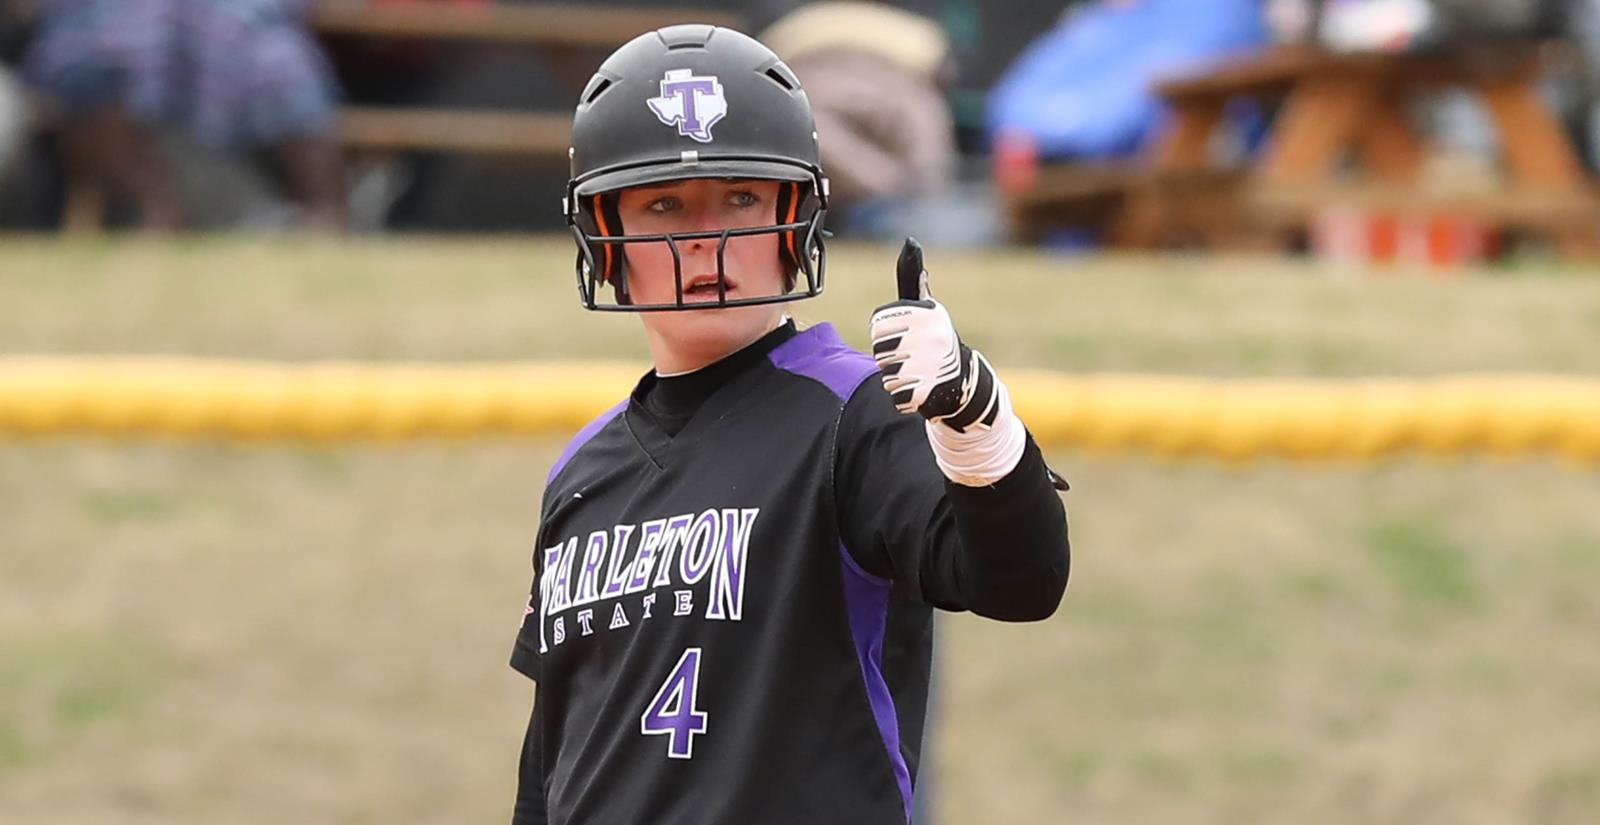 Tarleton softball Durante Thumbs Up